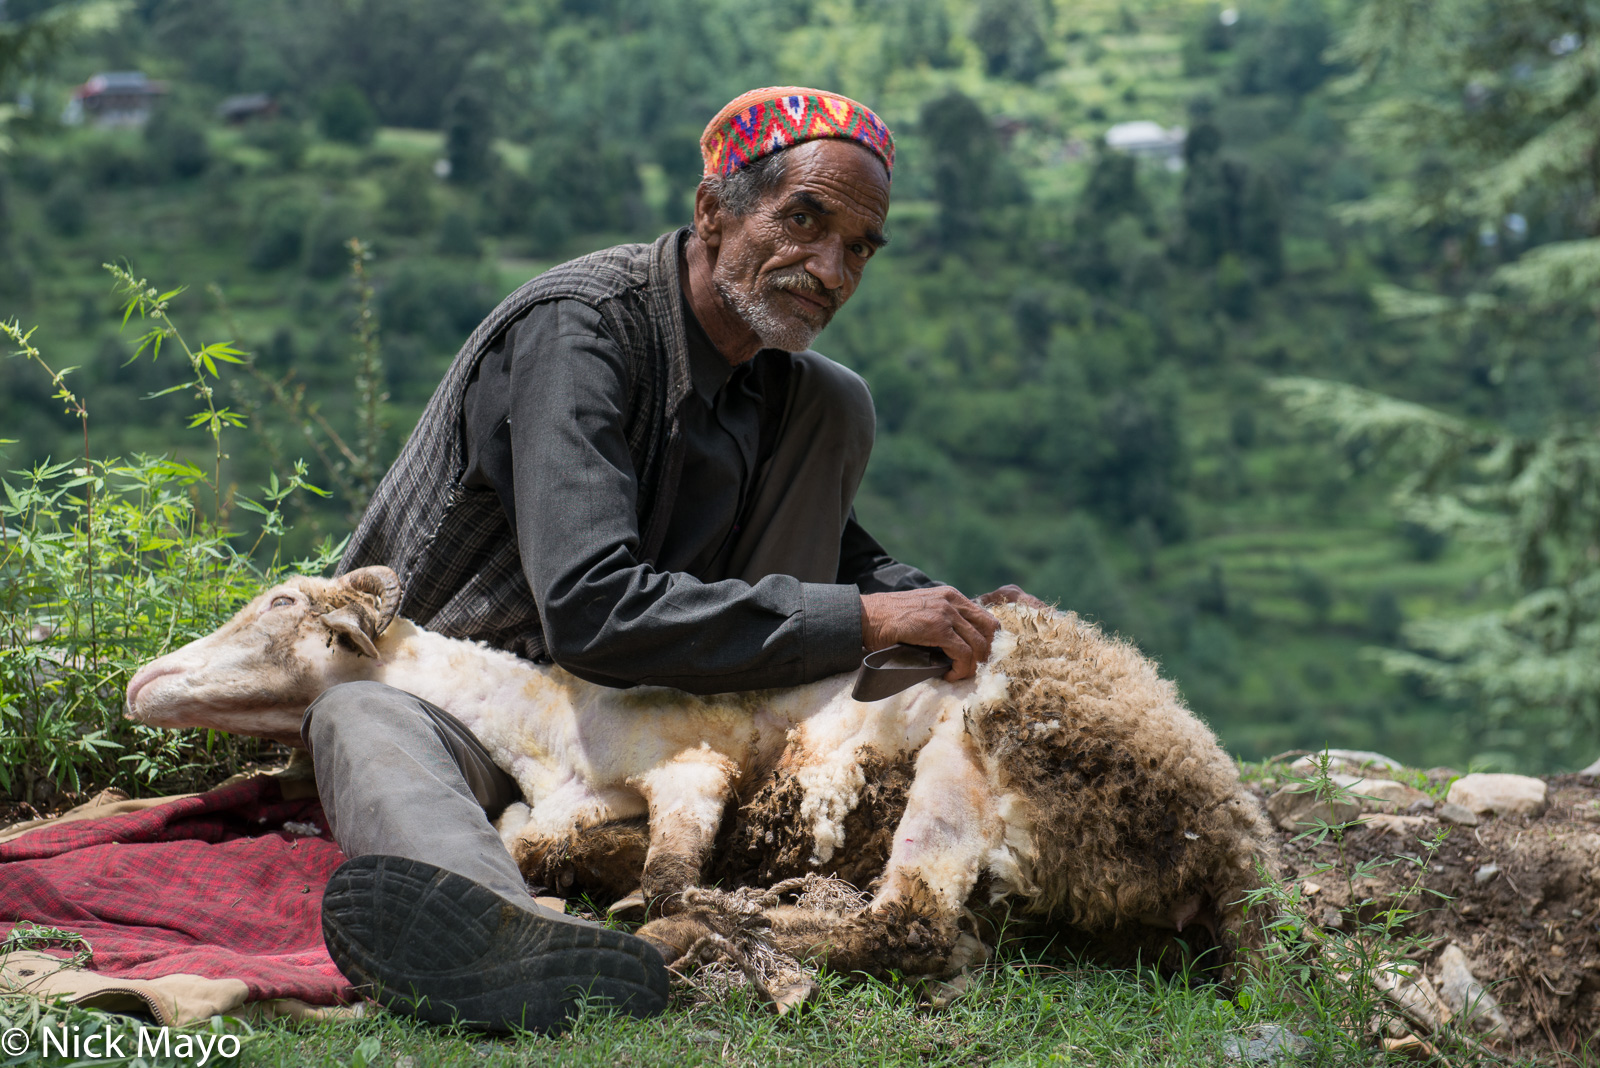 Hat, Himachal Pradesh, India, Shearing, Sheep, photo